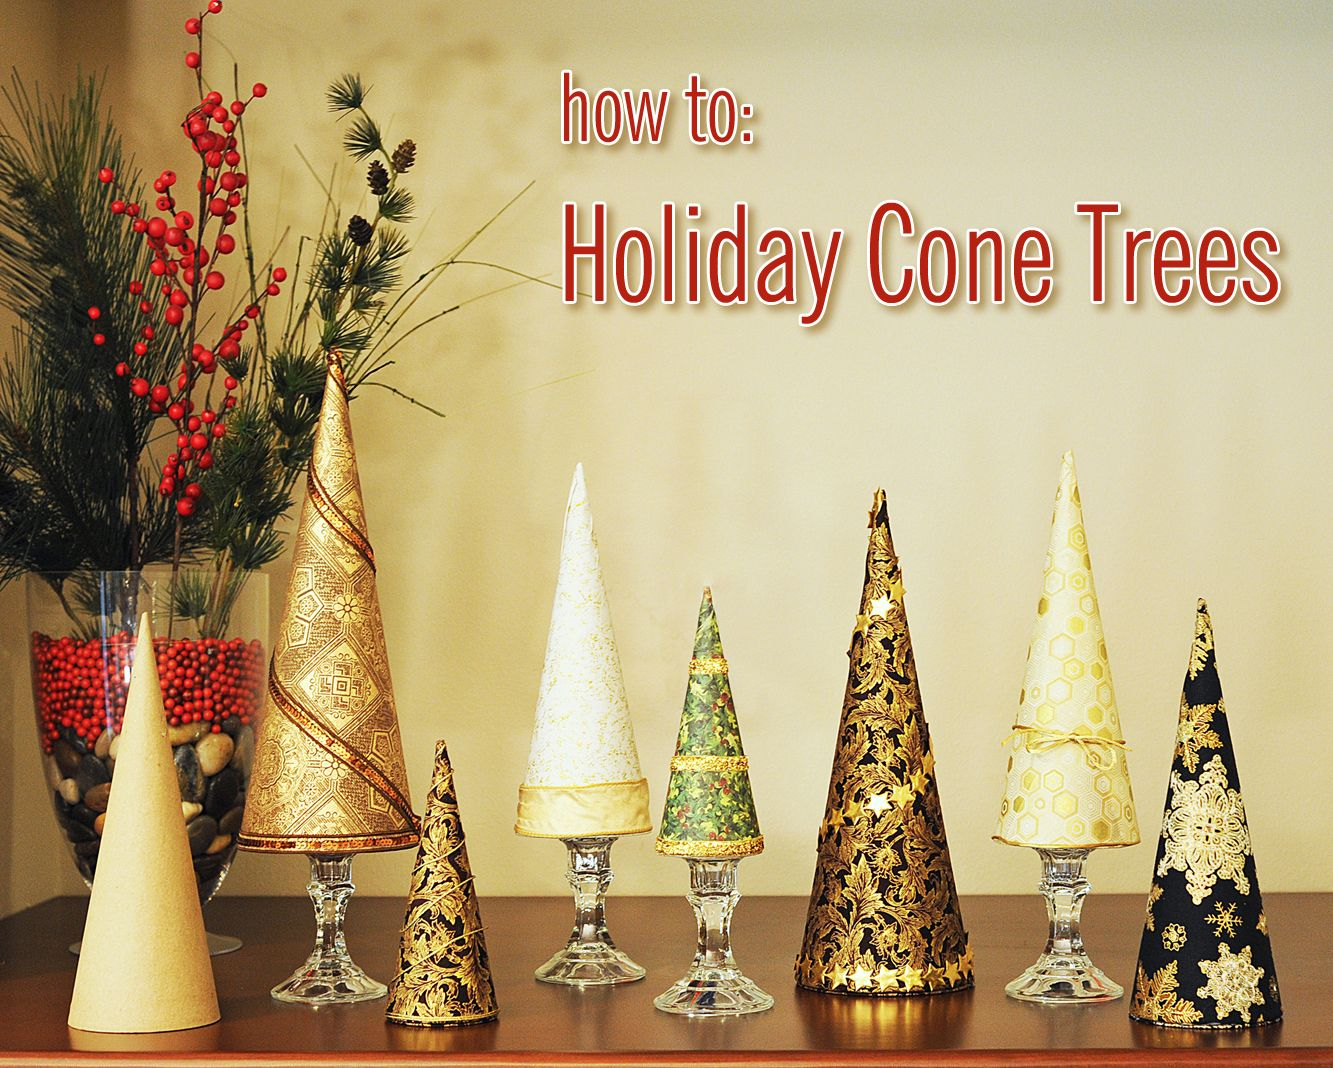 How to: Holiday Cone Trees | Christmas Crafts & Decorations ...